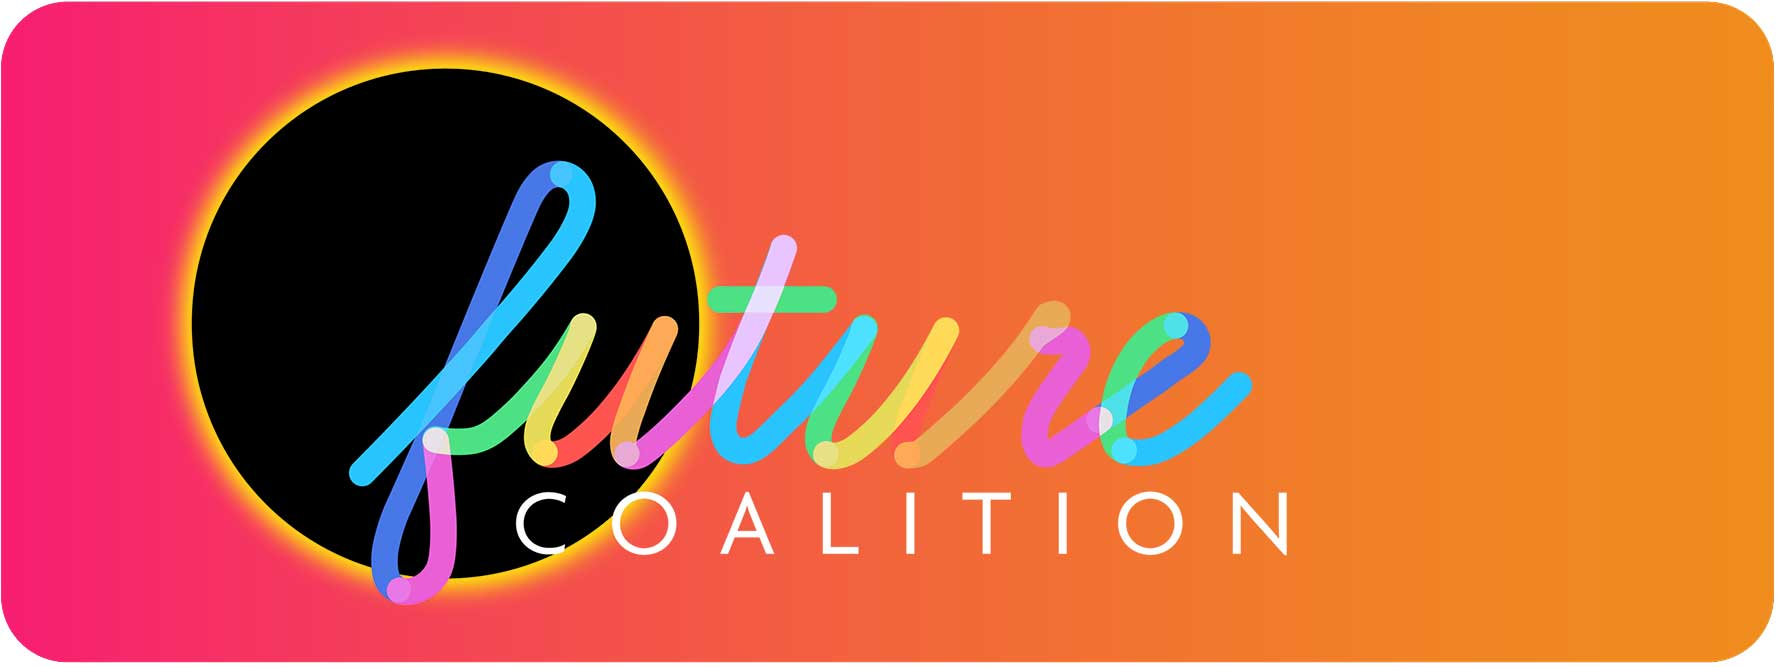 FUTURE COALITION